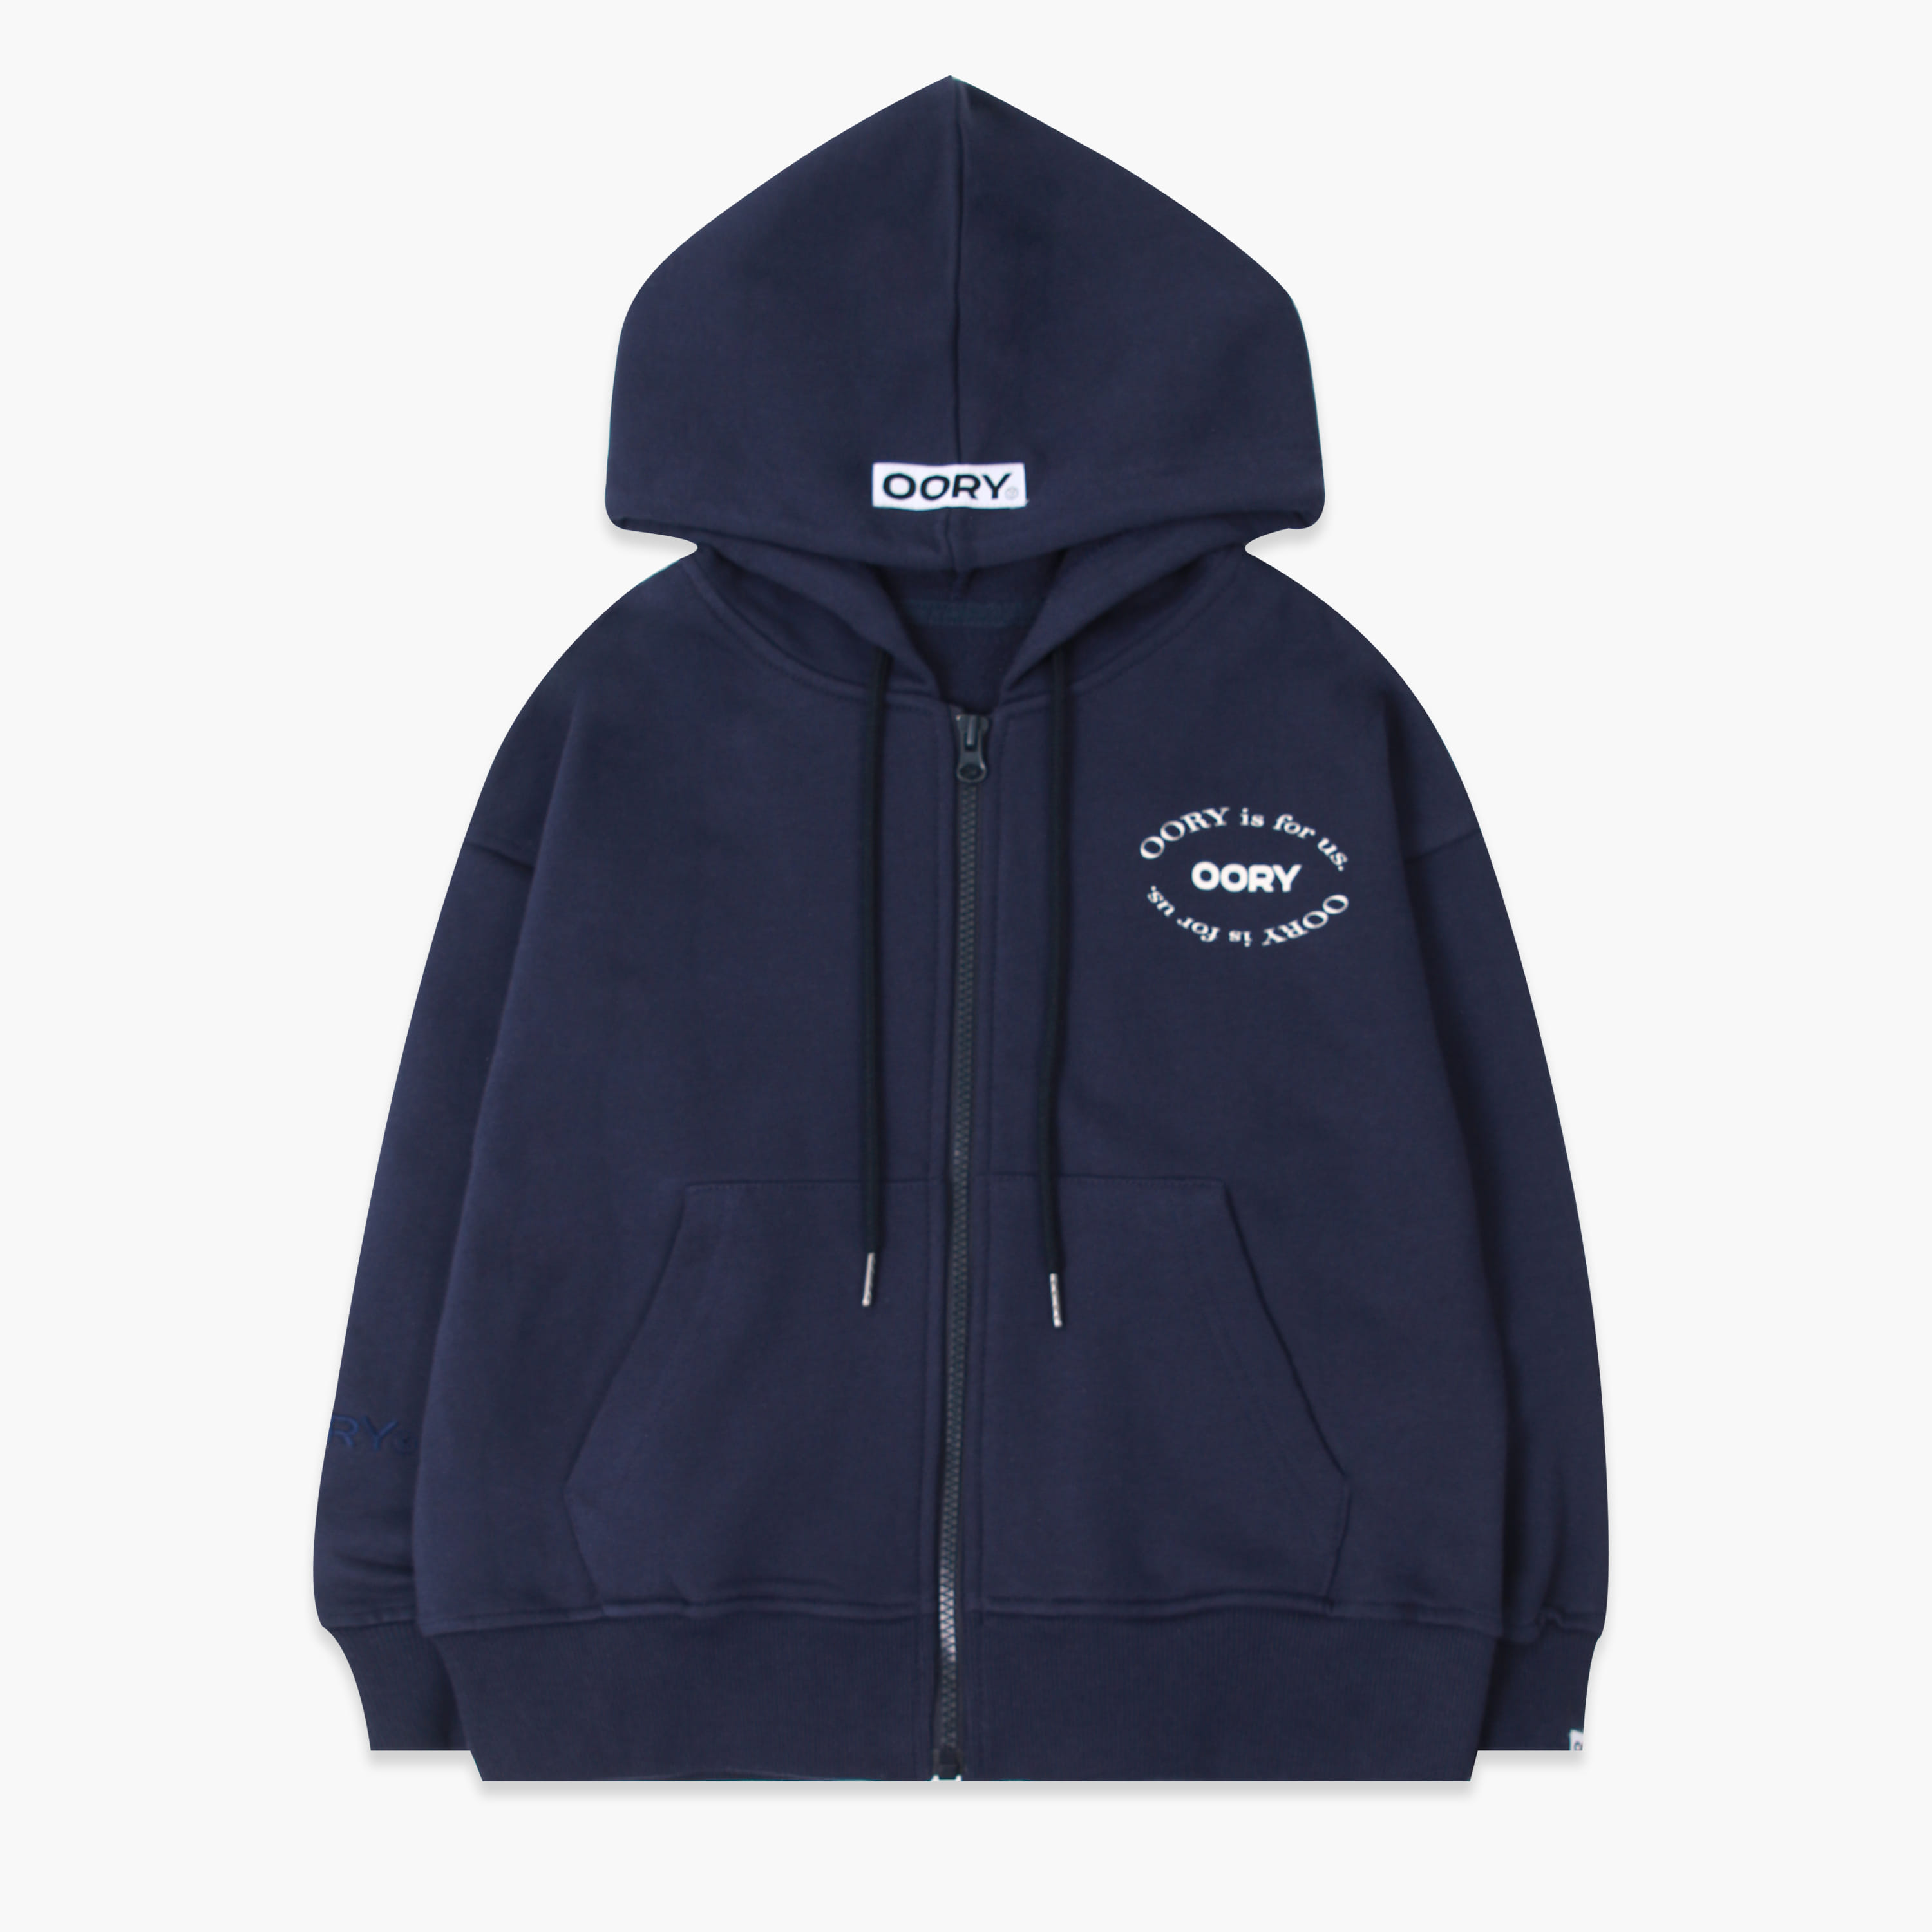 OORY 21 S/S Hood zip up - navy